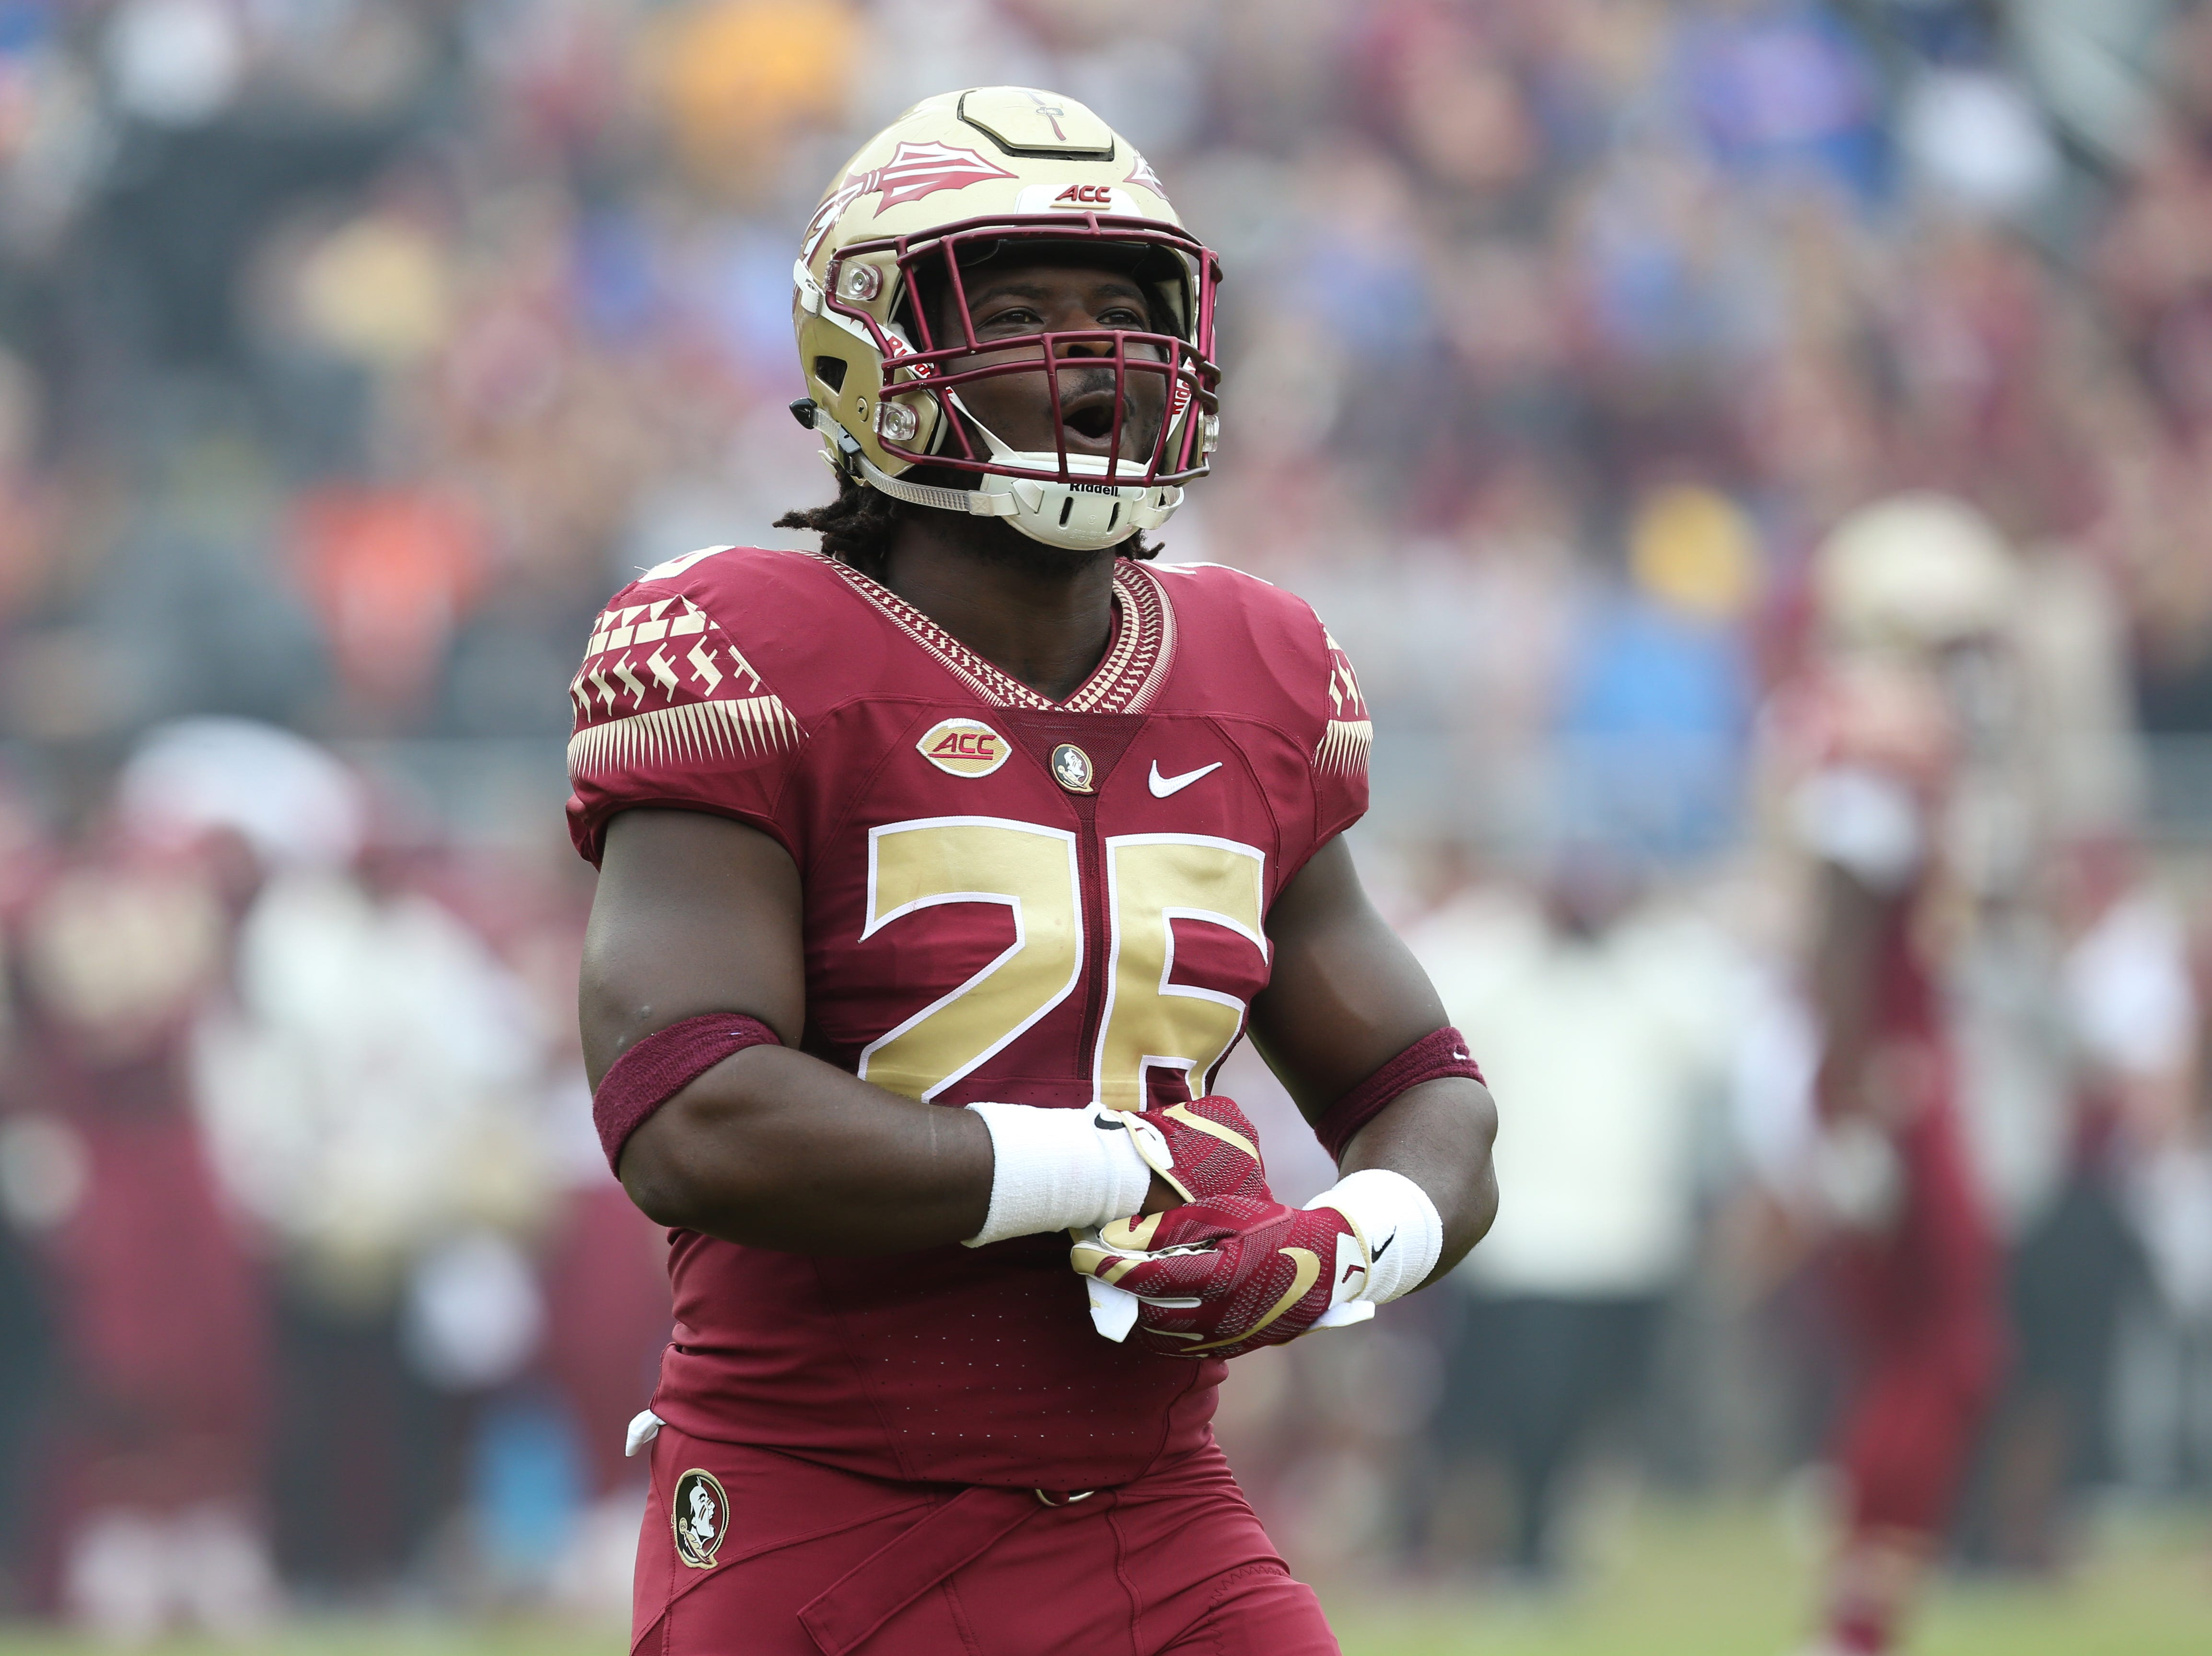 The Florida State Seminoles take on their rival the Florida Gators in college football at Doak S. Campbell Stadium, Saturday, Nov. 24, 2018.